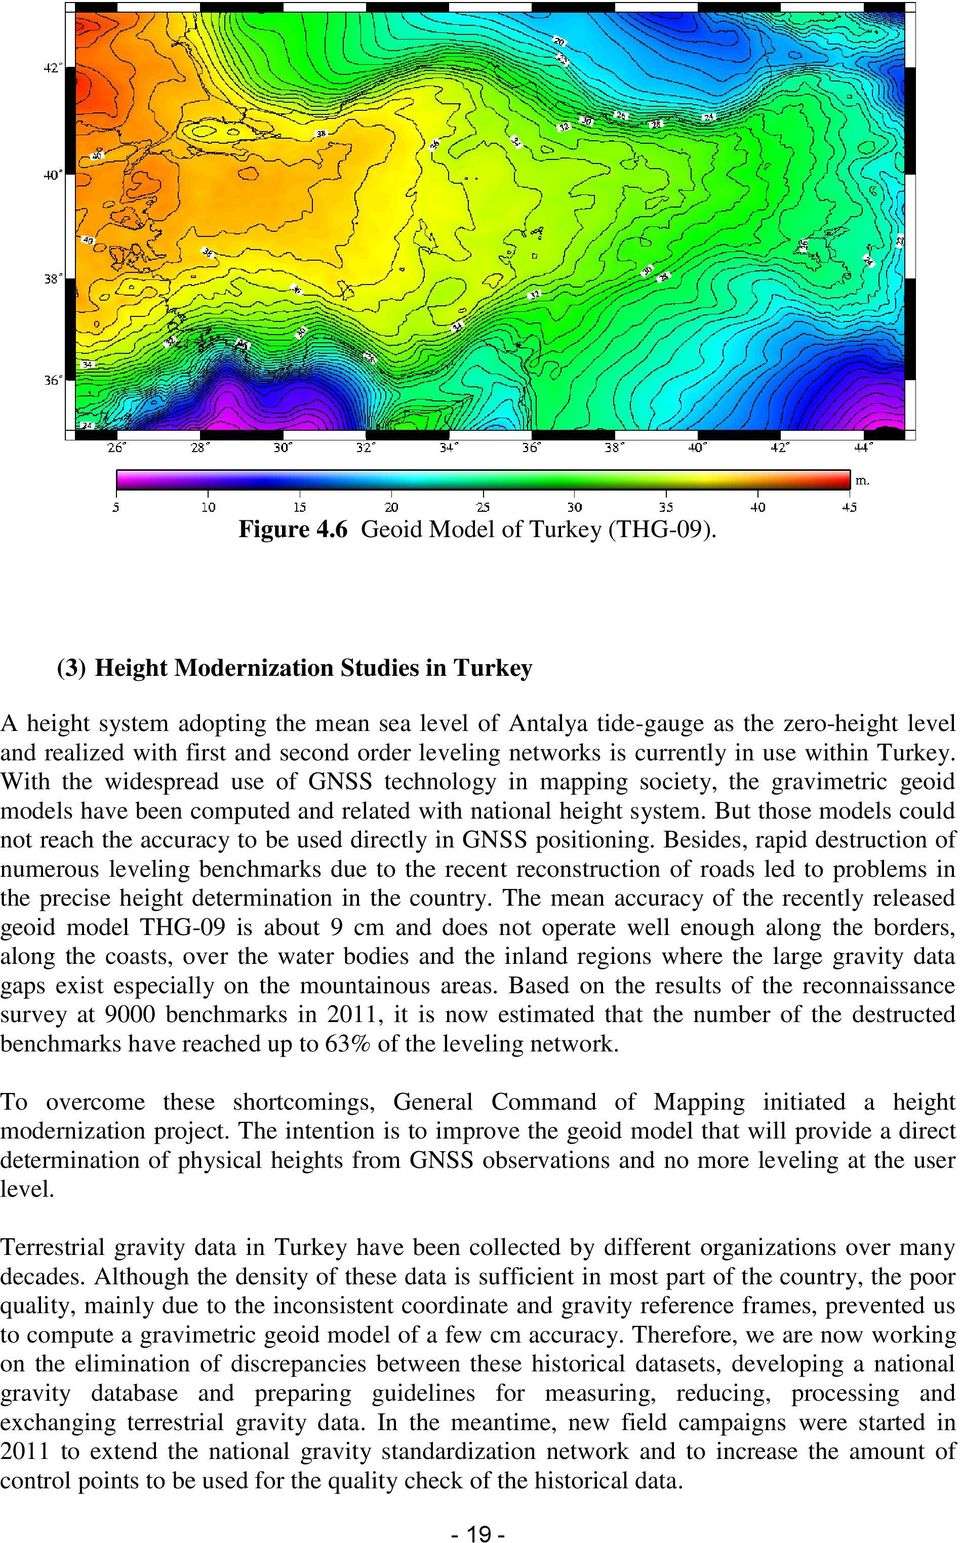 currently in use within Turkey. With the widespread use of GNSS technology in mapping society, the gravimetric geoid models have been computed and related with national height system.